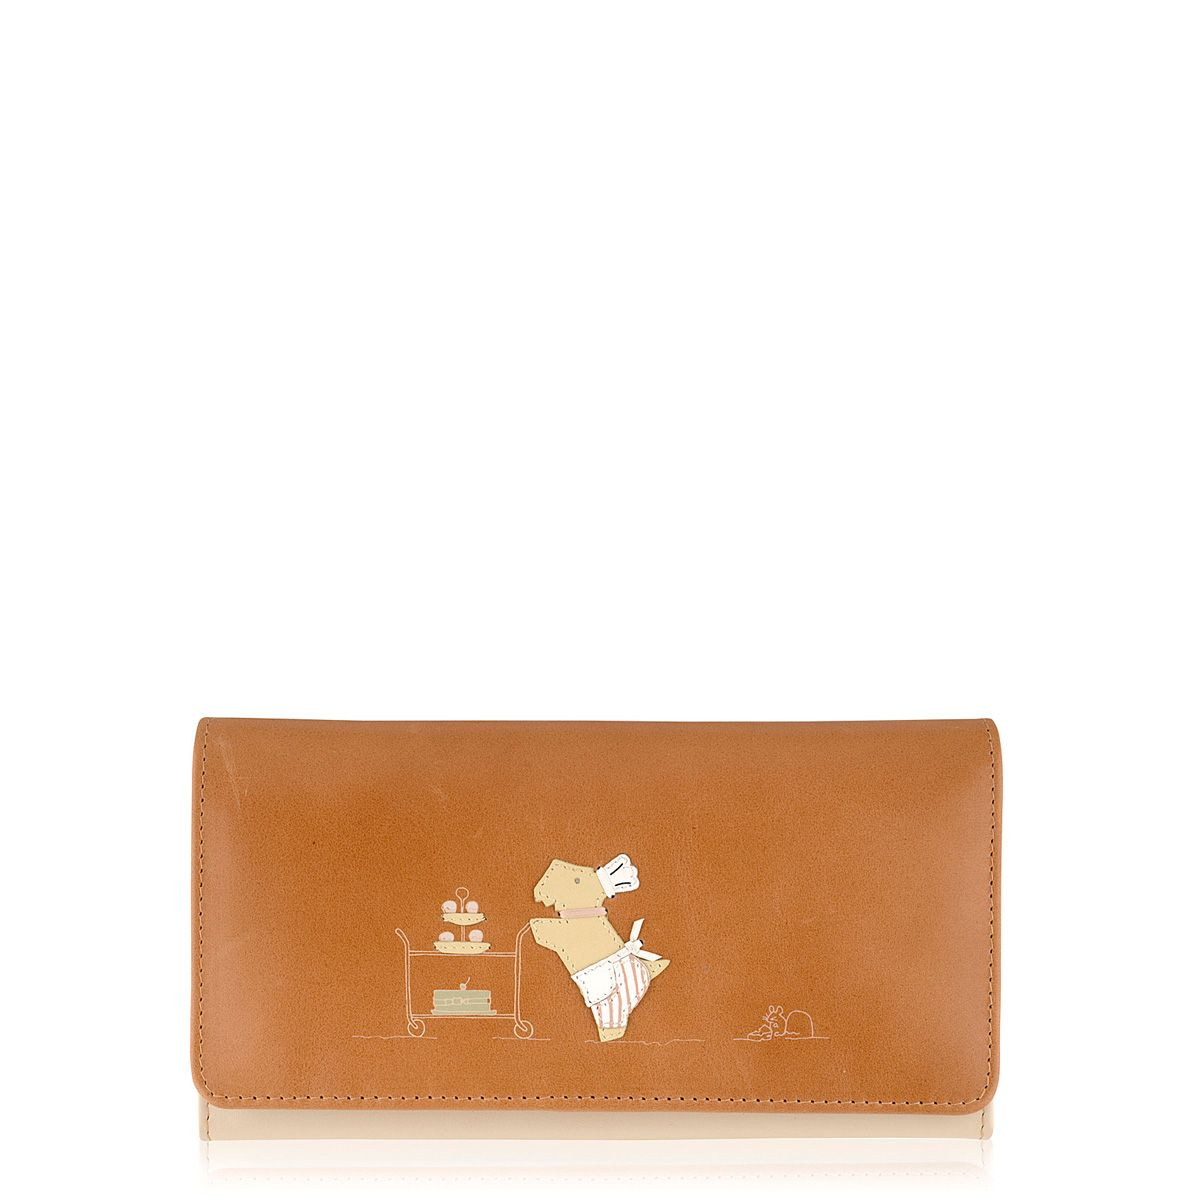 Patisserie Raderlie large tan flapover purse